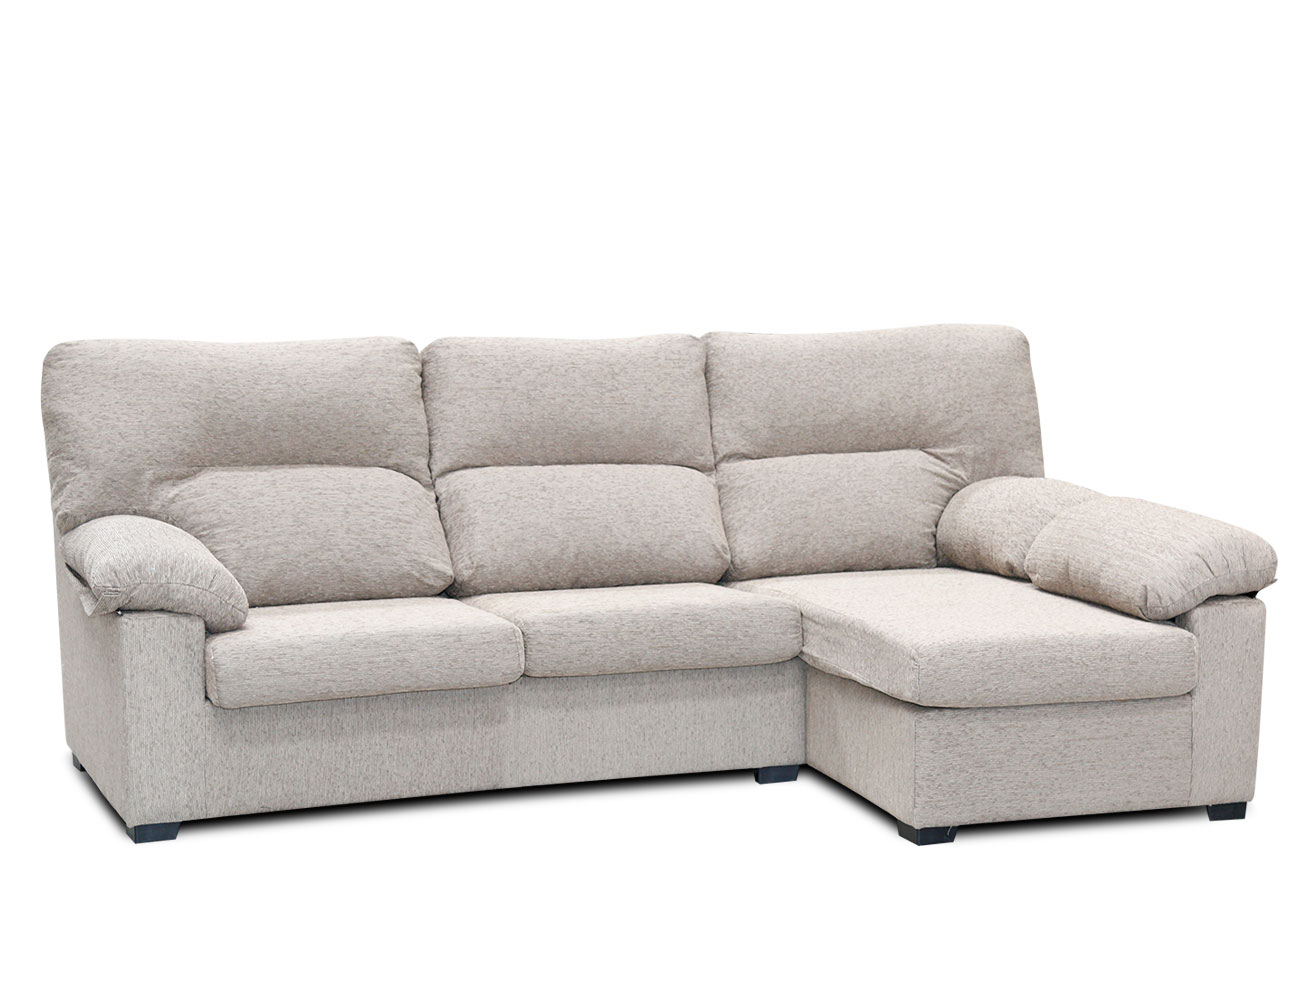 Sof chaise longue reversible barato 15374 factory del for Sofa 70 cm de fondo